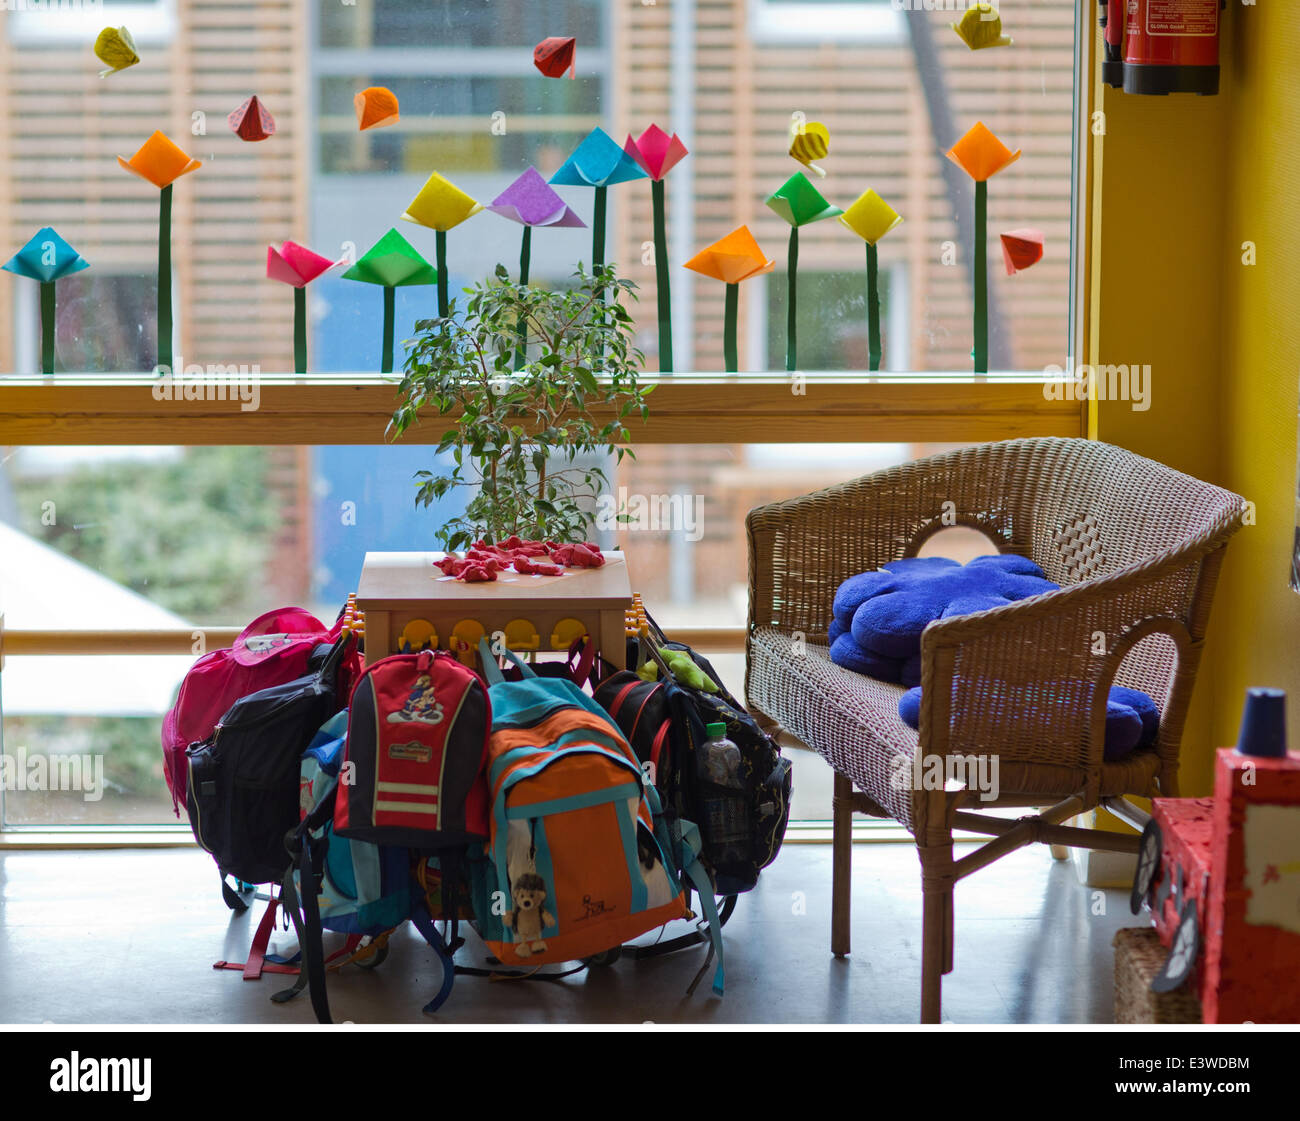 Wismar, Germany. 19th June, 2014. Childrens' jackets and backpacks are on display in the entrance area of the integrated Stock Photo